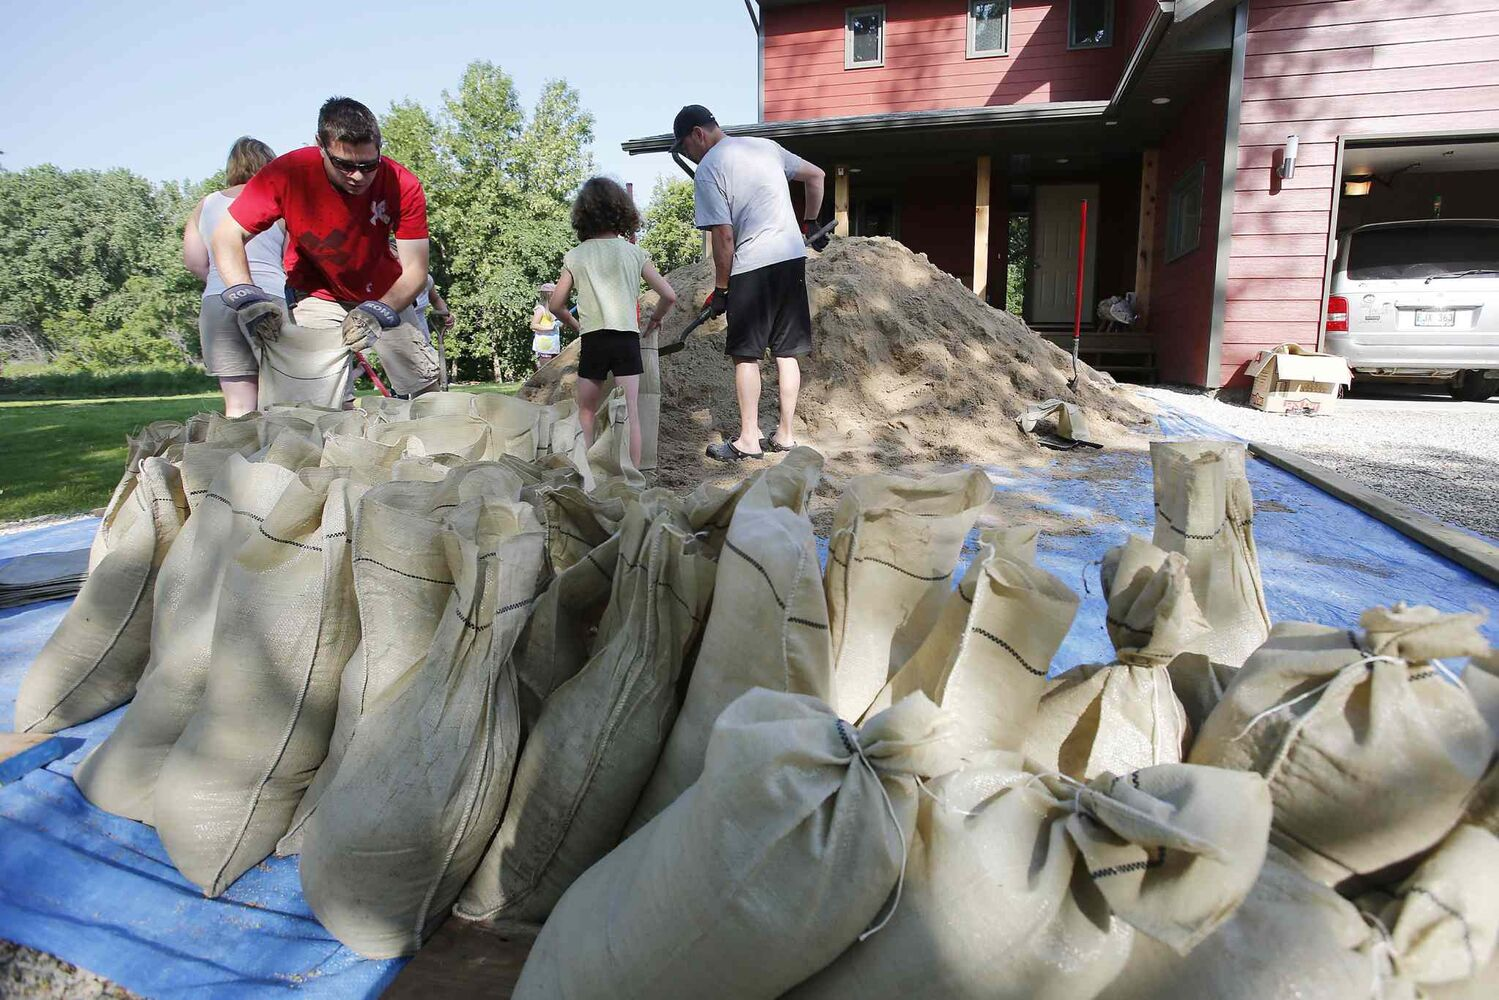 Joerg Zimmermann and his family prepare sandbags at their home in St. Francois Xavier, Man. Saturday. Military reservists have been shipped in to assist with flood preparation from Portage la Prairie to St. Francois Xavier.  (John Woods / The Canadian Press)